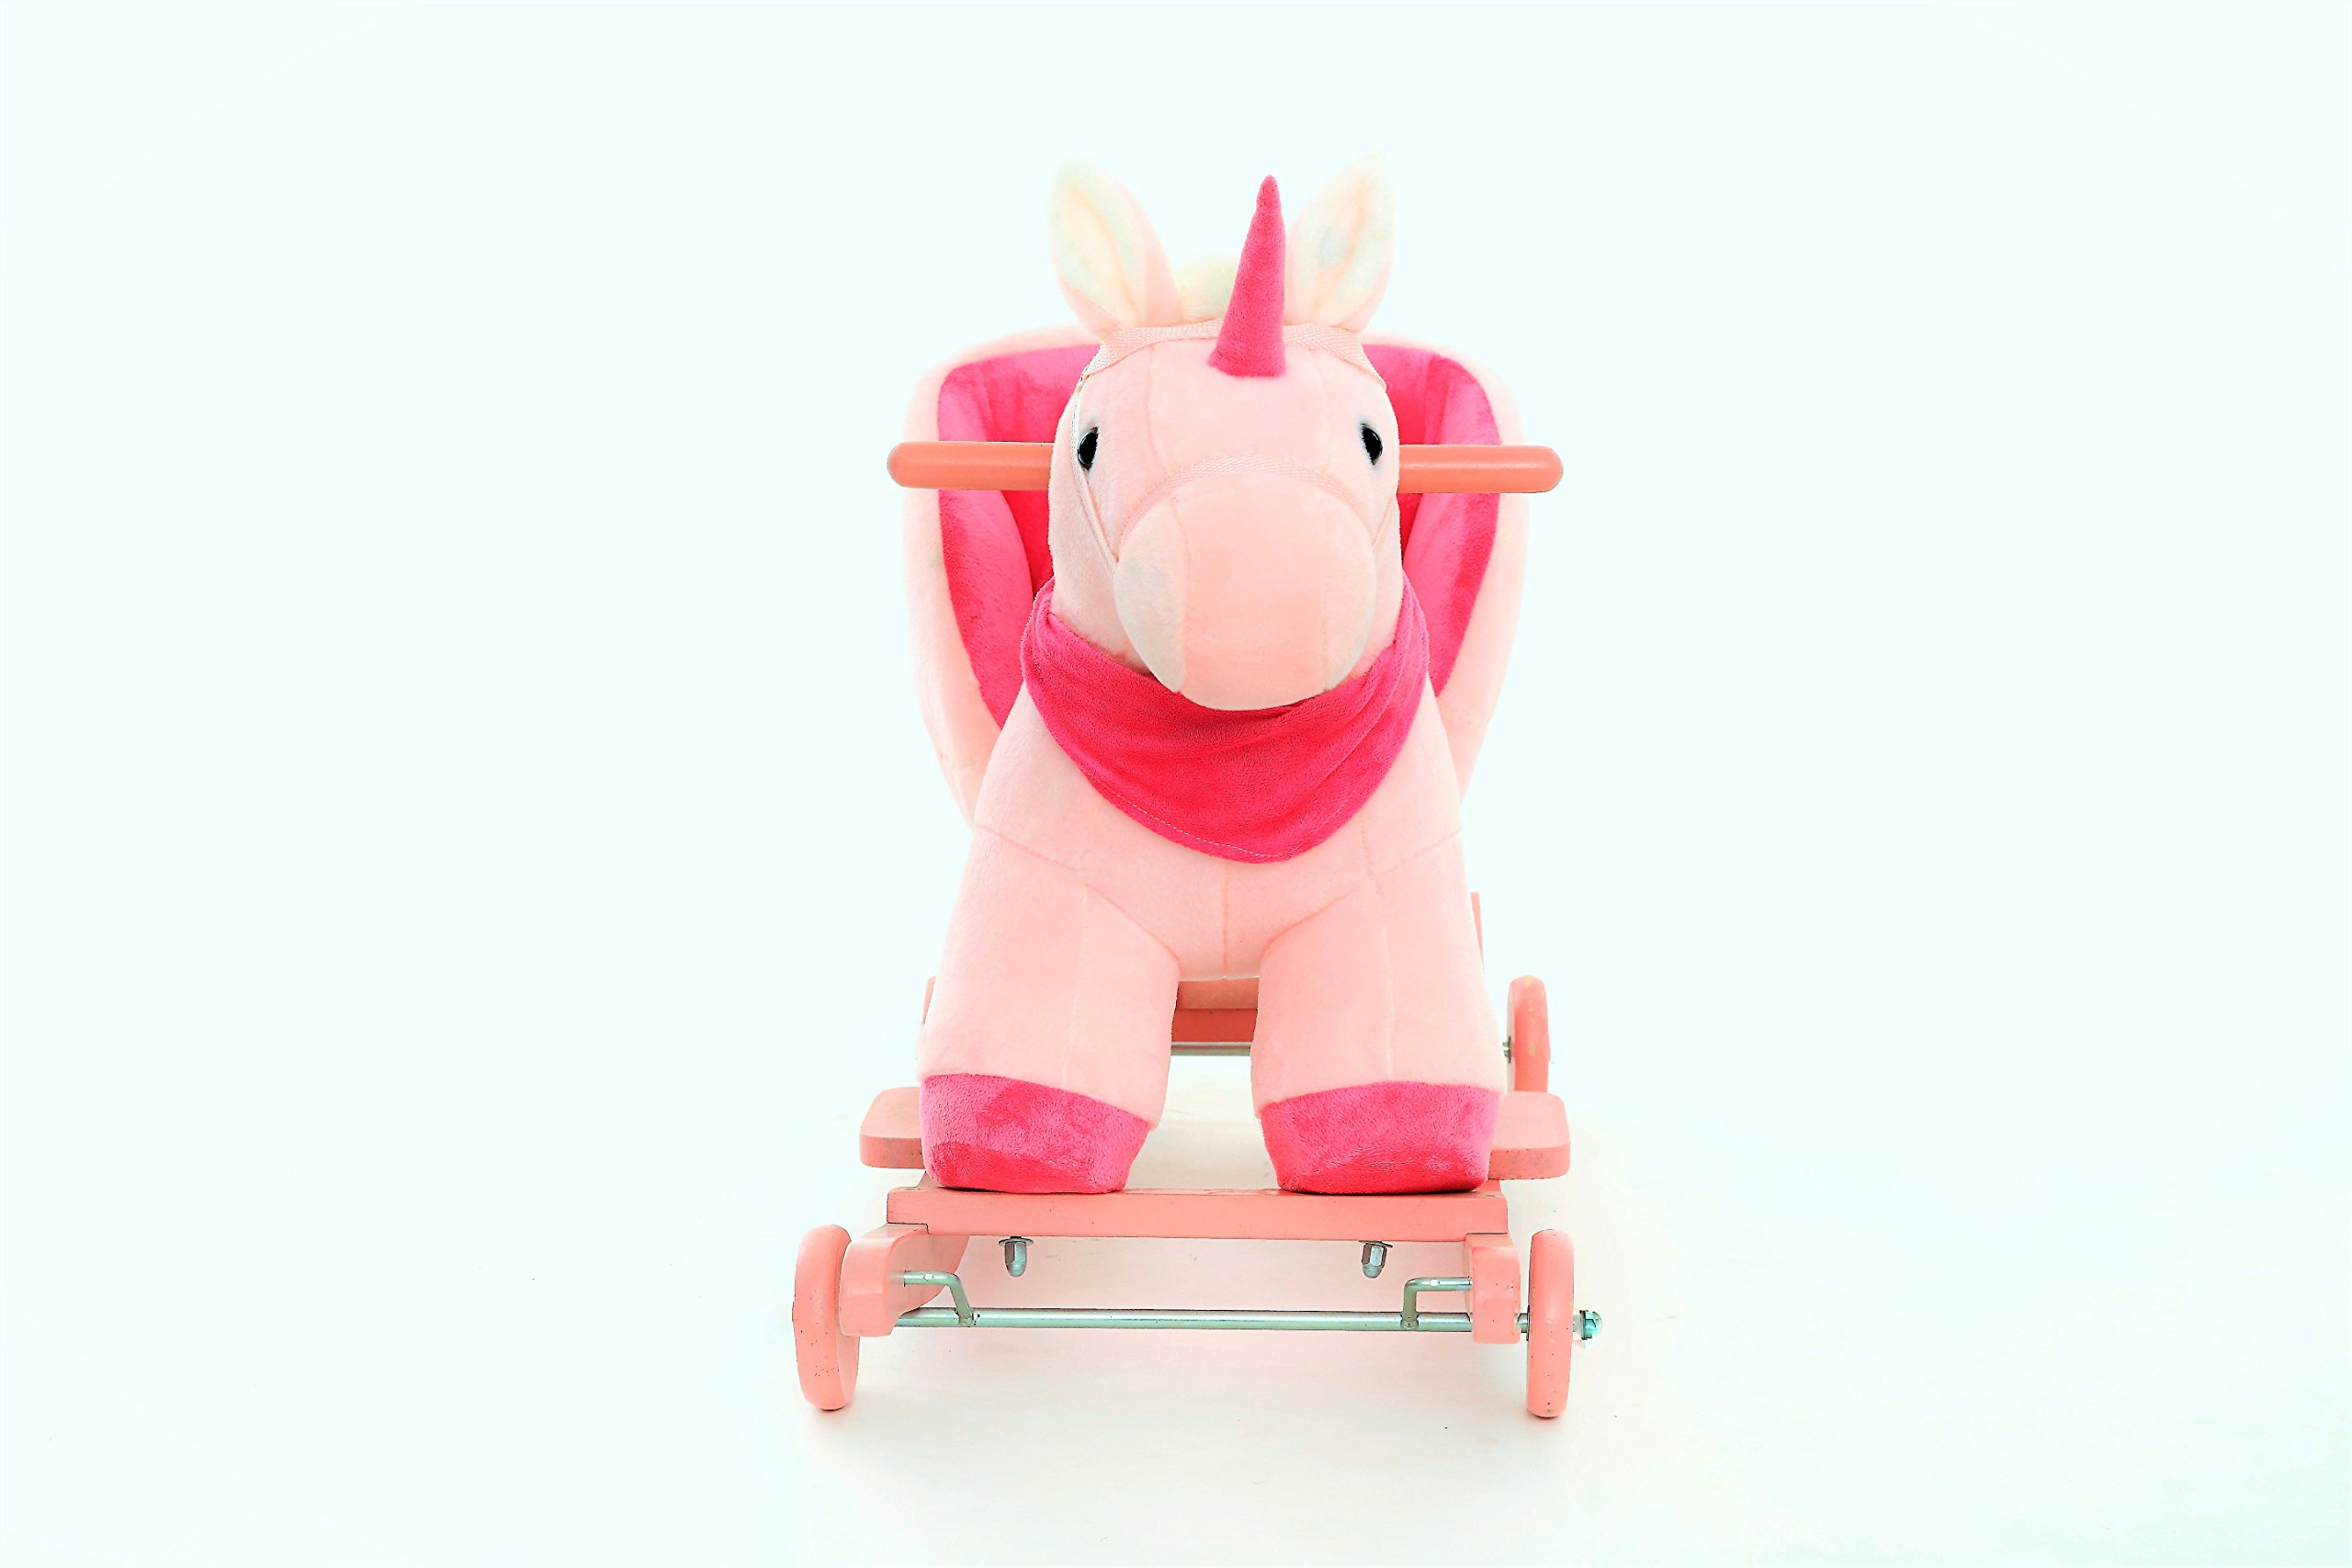 DanyBaby Ultra Soft Rocking Animal Ride On Plush Unicorn Chair with Wheels Embroidered Words ''I Love My Baby!''